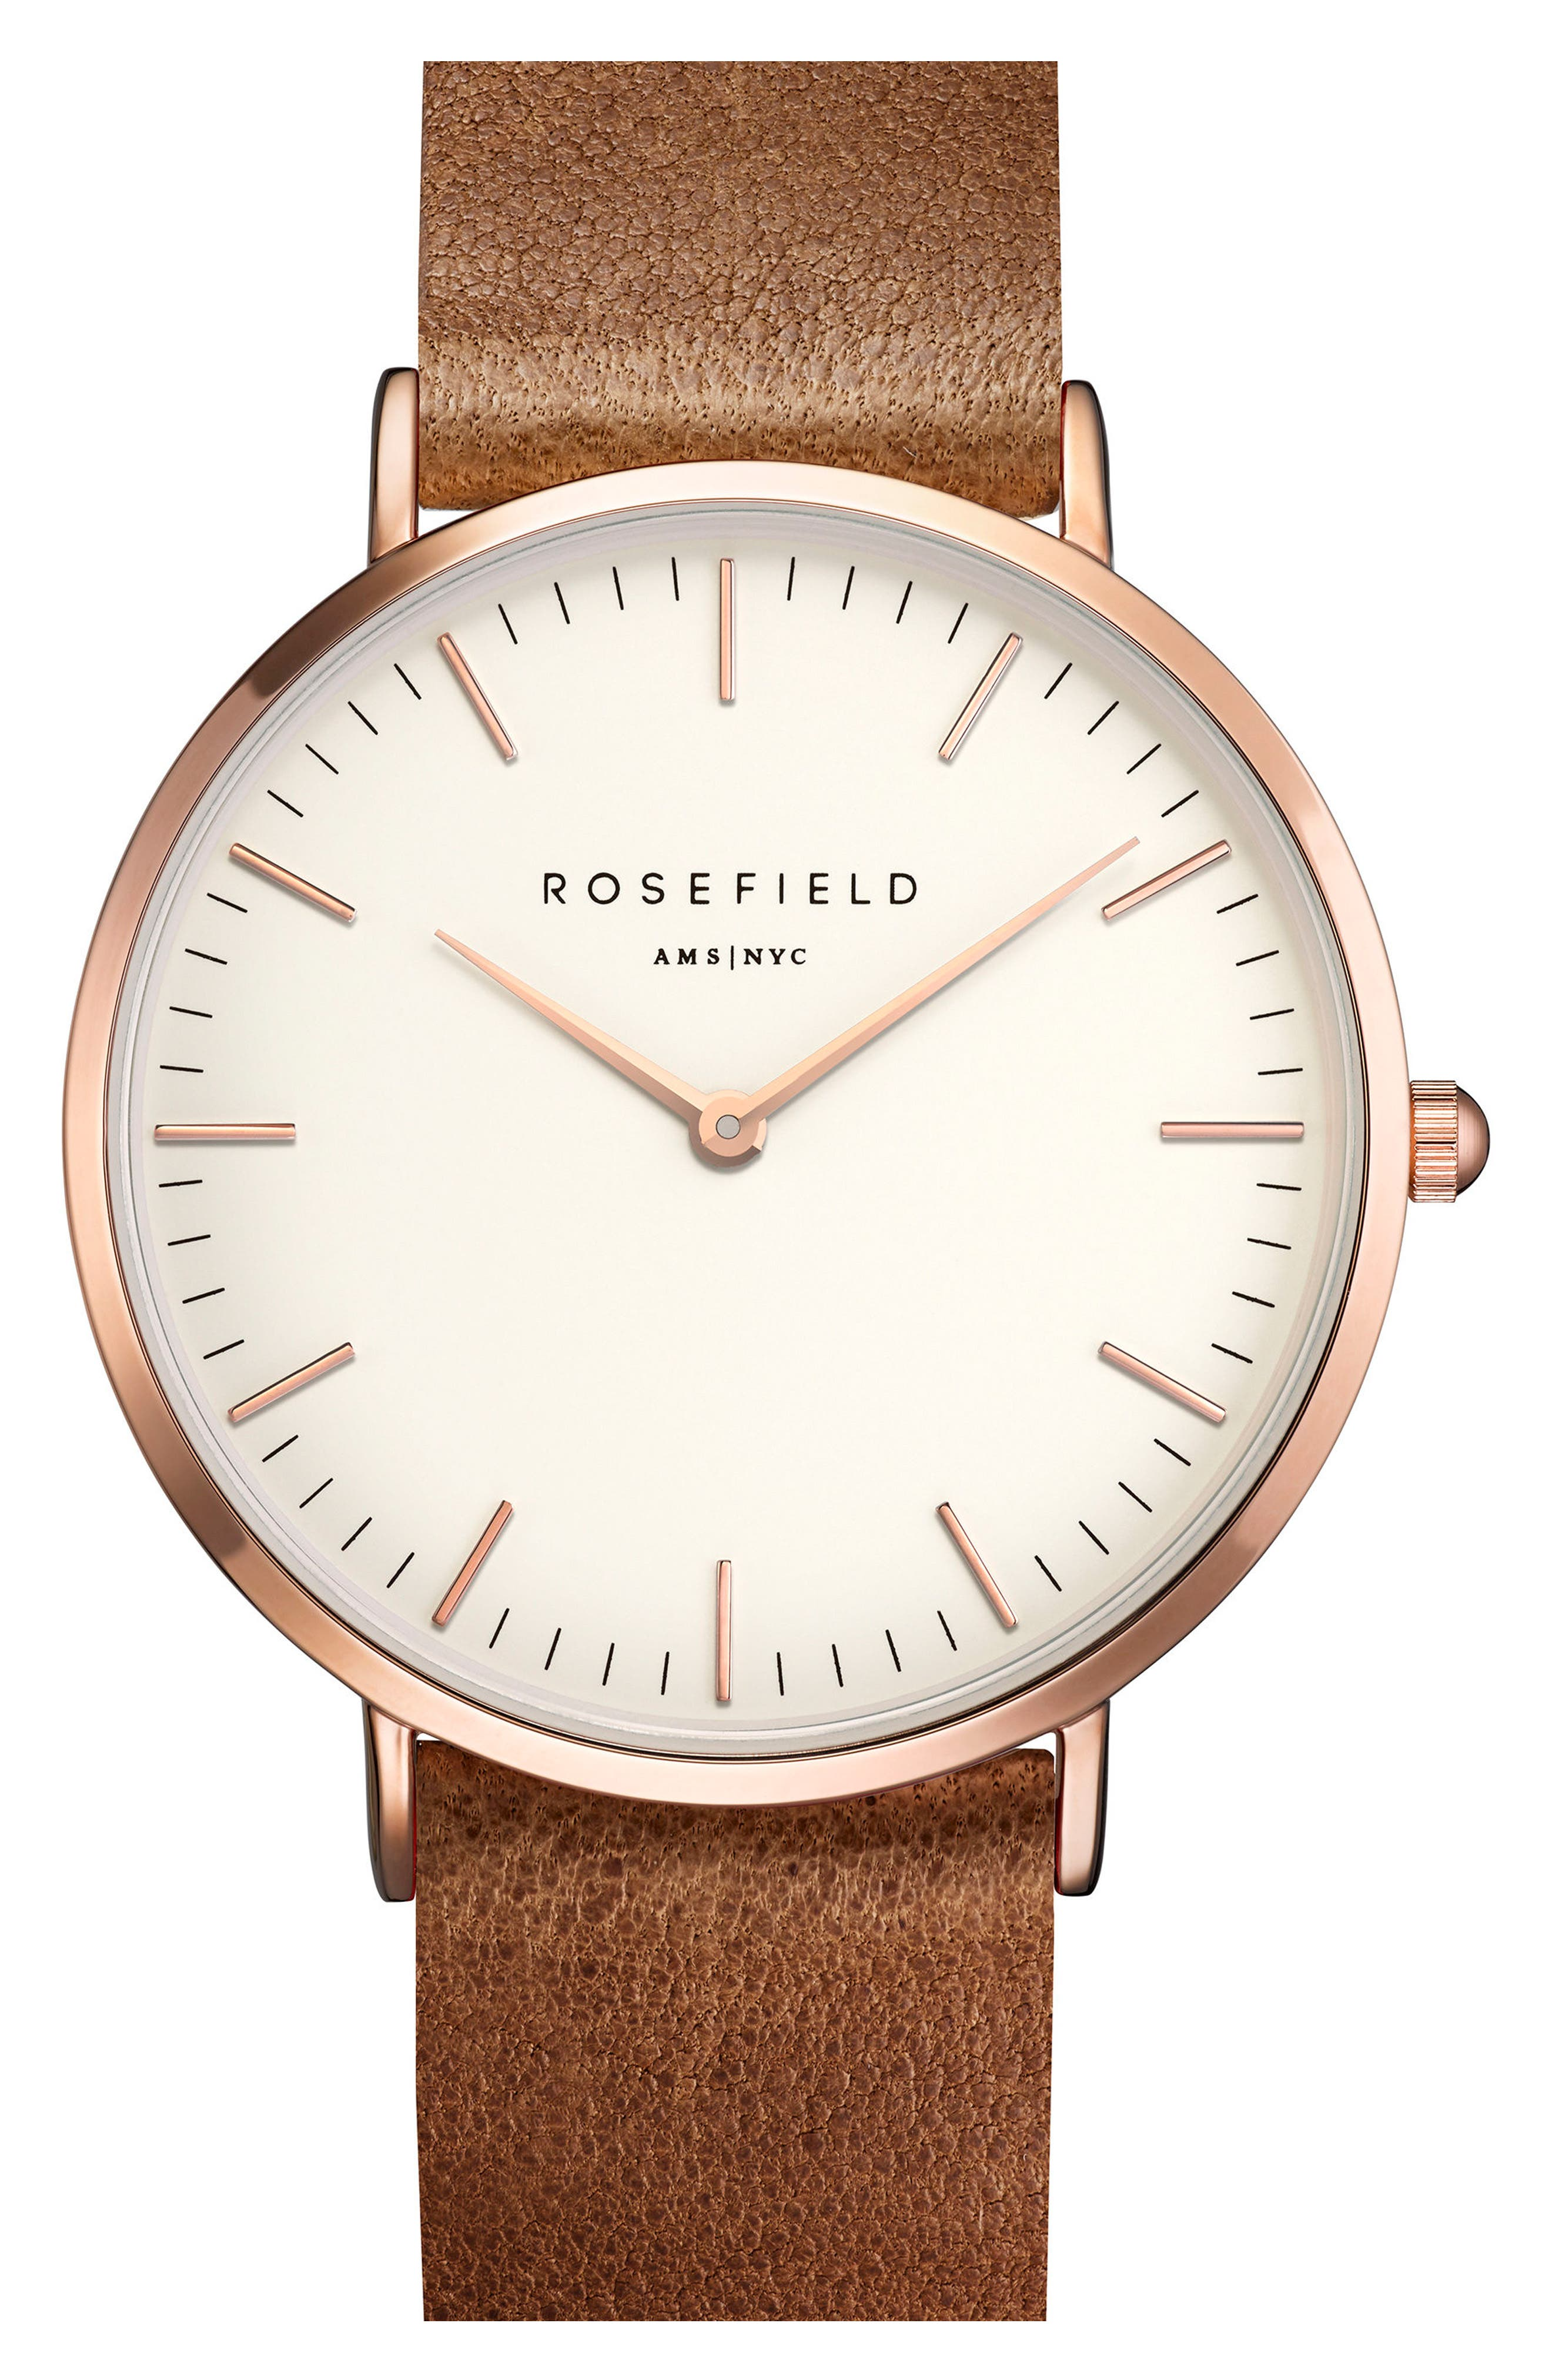 ROSEFIELD Tribeca Leather Strap Watch, 33mm, Main, color, BROWN/ WHITE/ ROSE GOLD